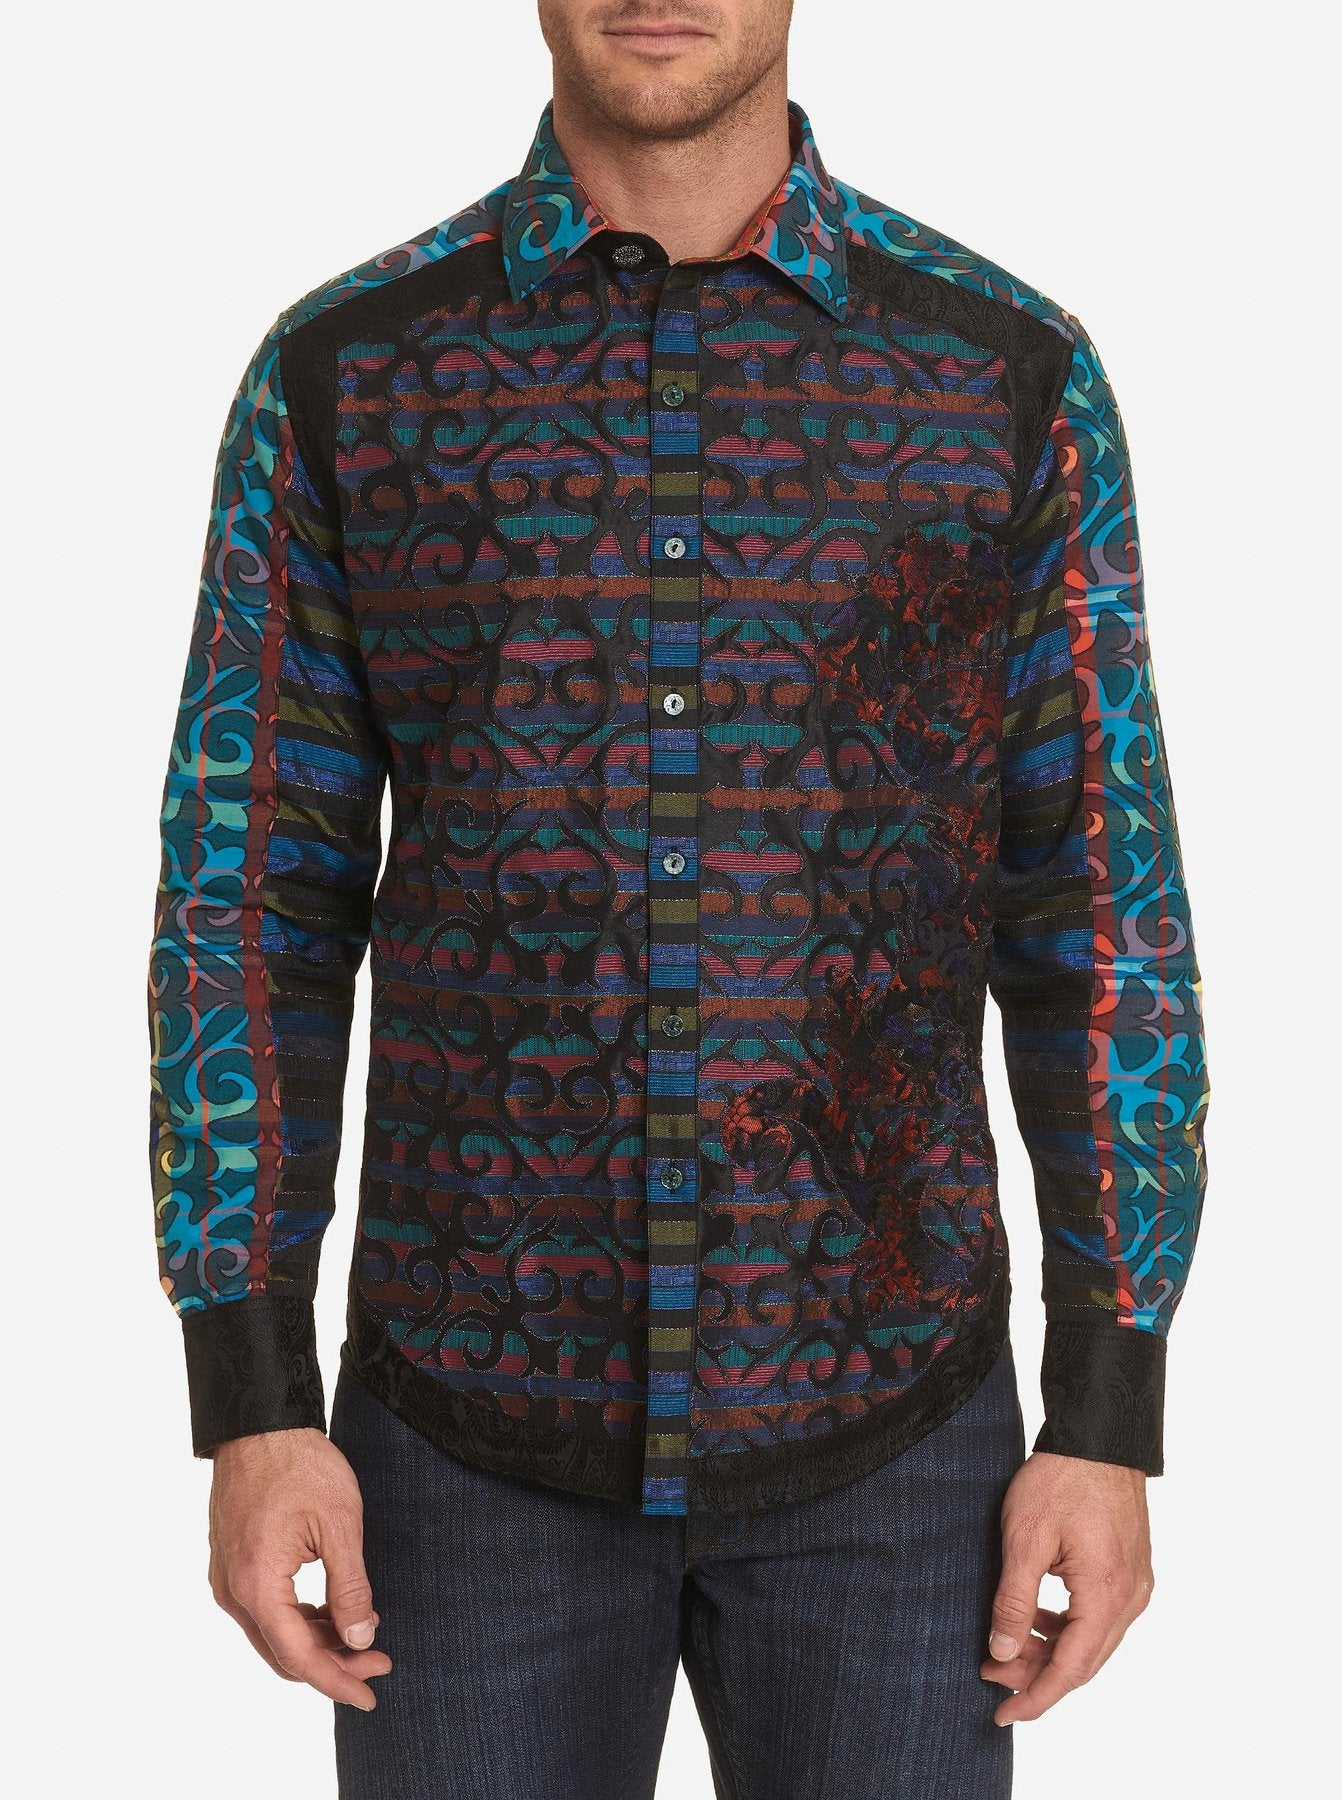 Robert Graham - Cocktail - Limited Edition